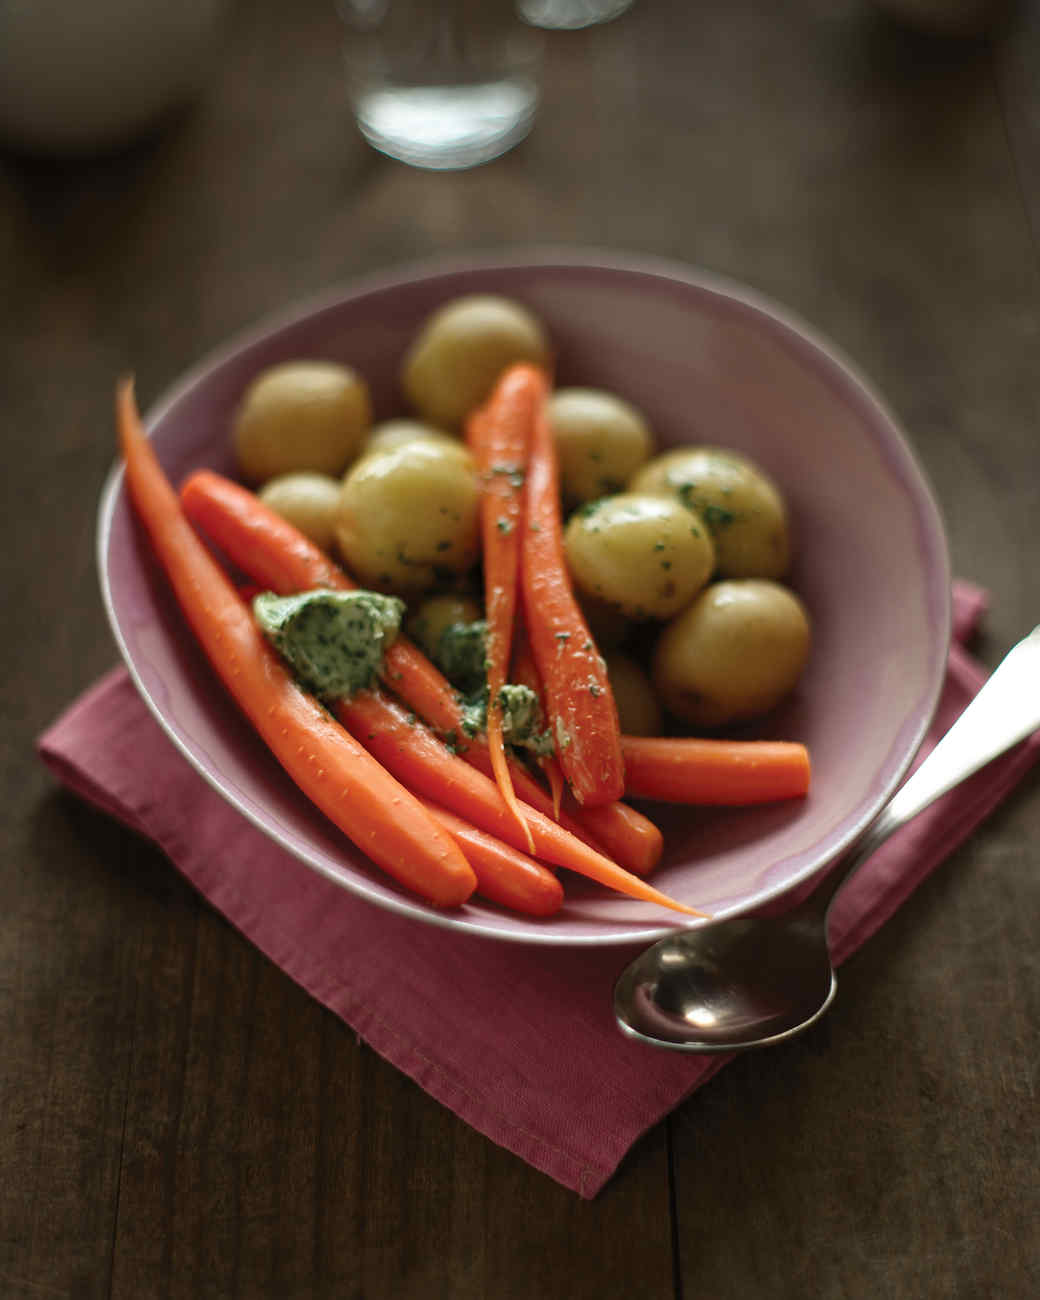 Steamed Potatoes and Carrots with Tarragon Butter